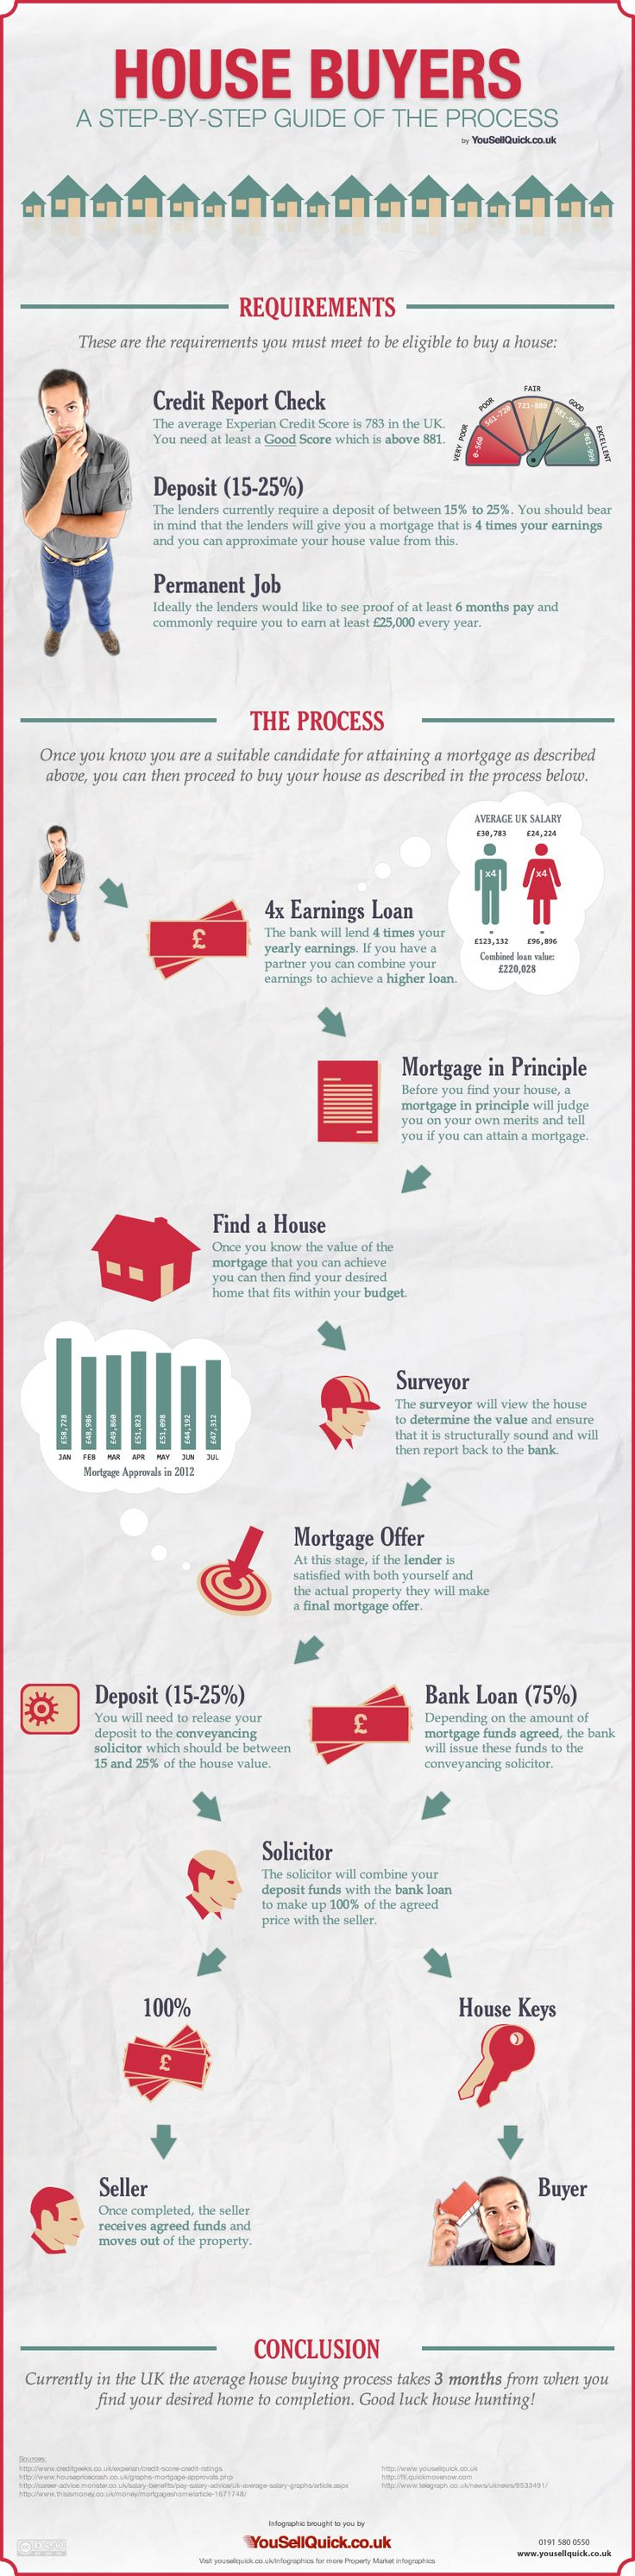 House Buyers - Step by Step Process of Buying a House  'Mort' = death 'Gage' = pledge 'Mortgage' = death pledge... work until you die paying the bankers the interest on your home loan = indentured servitude...